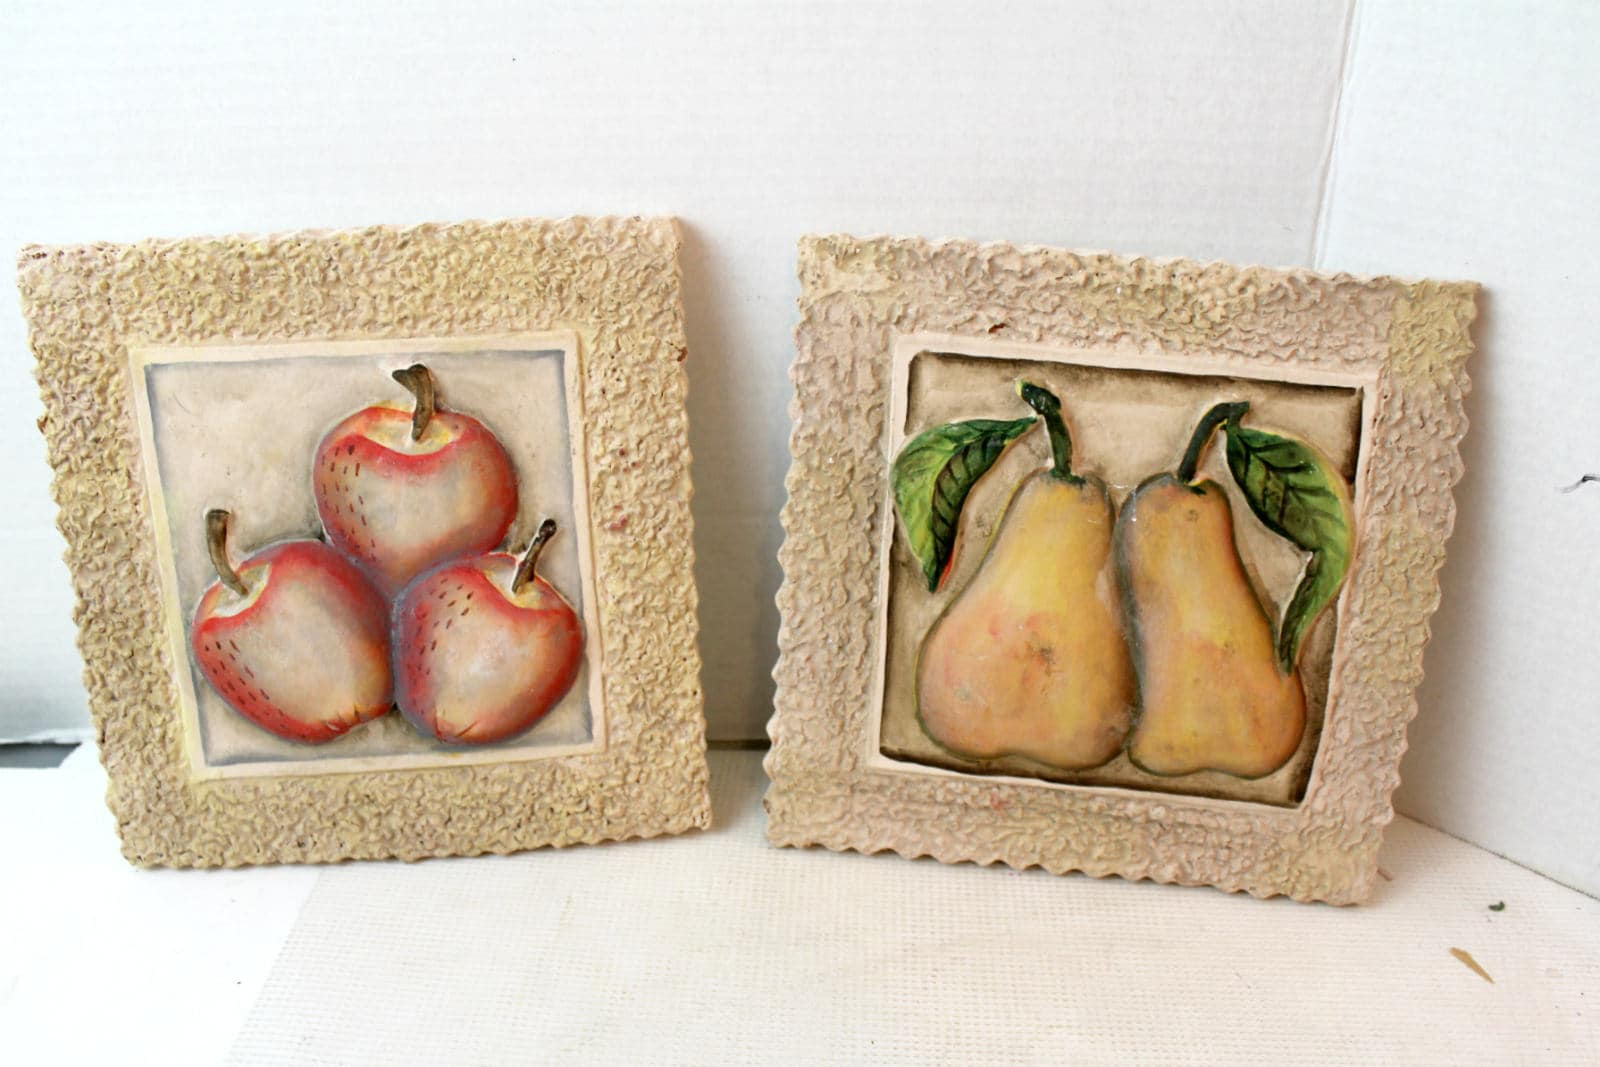 Fruit decor ceramic wall tiles wall decor kitchen - Kitchen curtains with fruit design ...